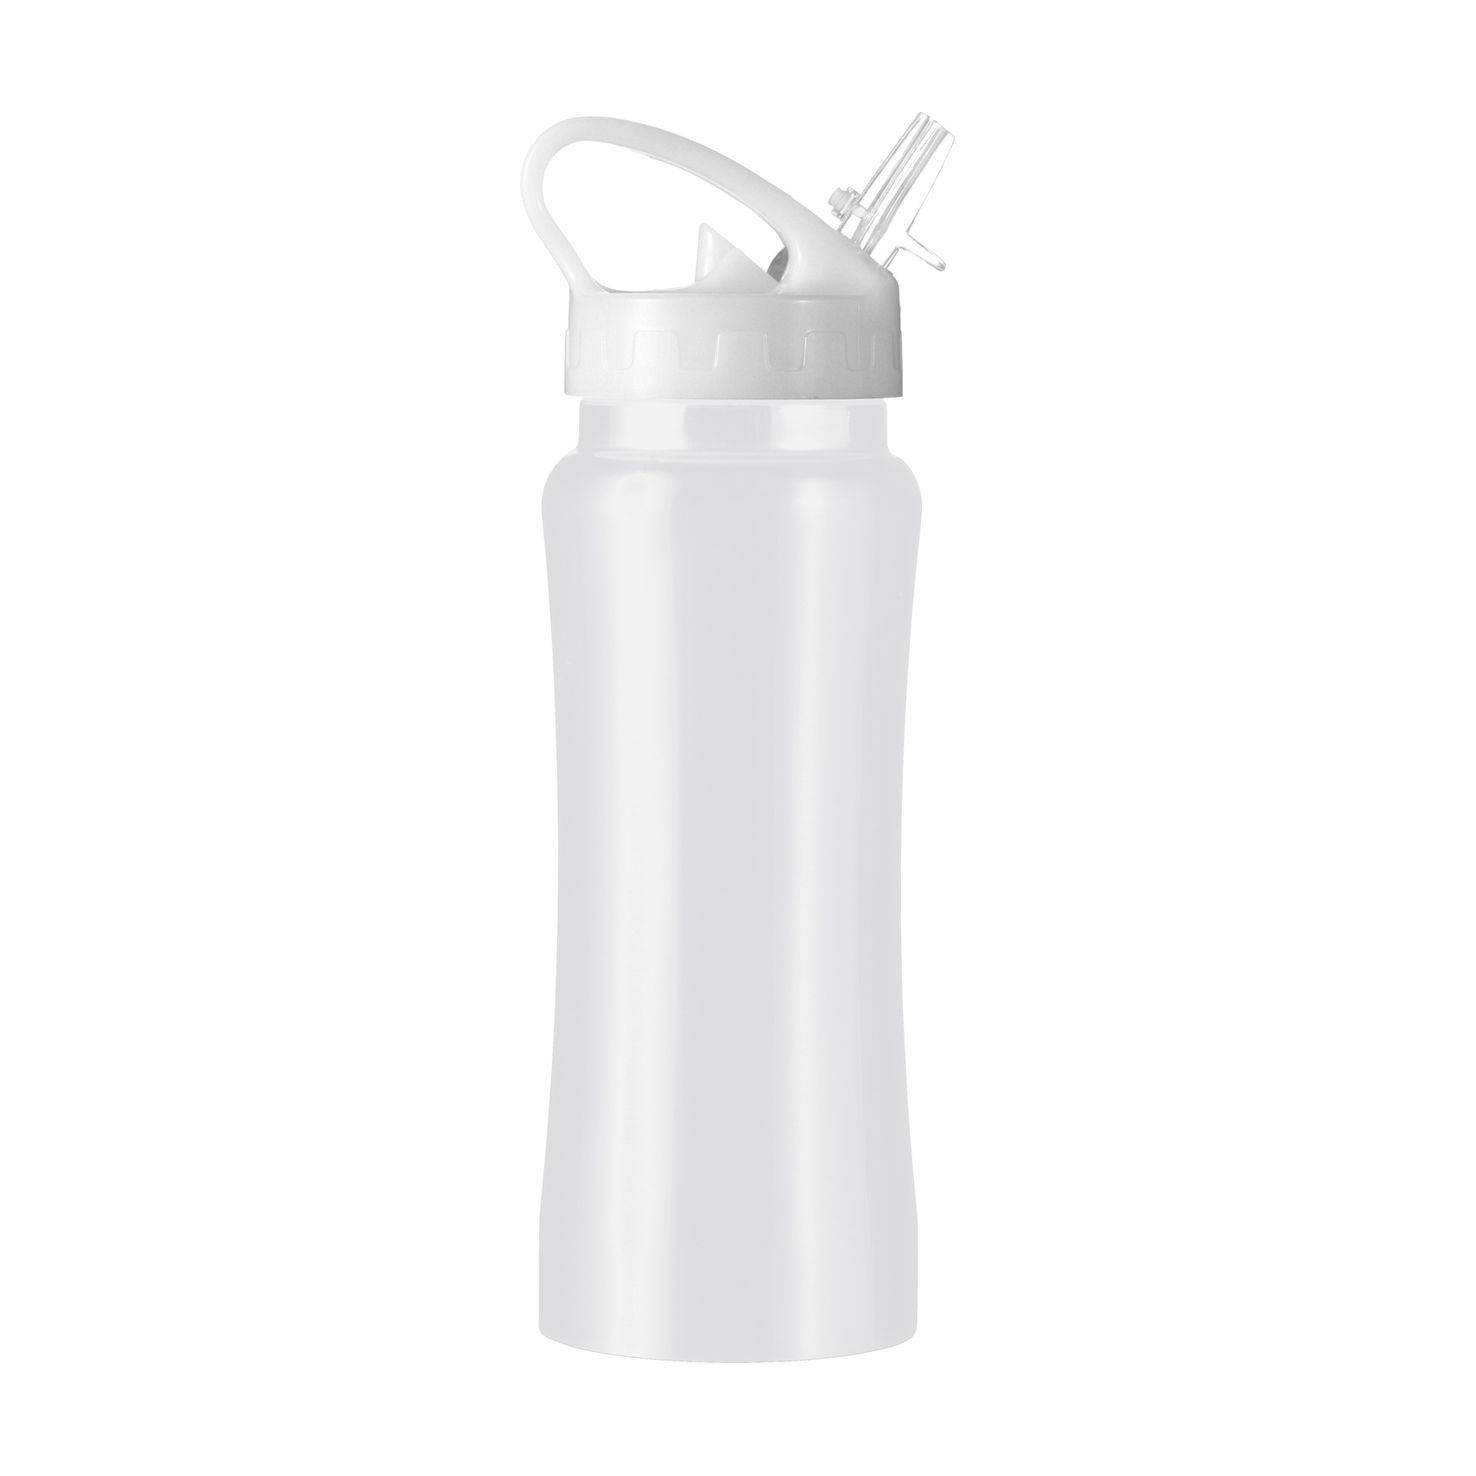 Witte RVS drinkfles | 600 ml